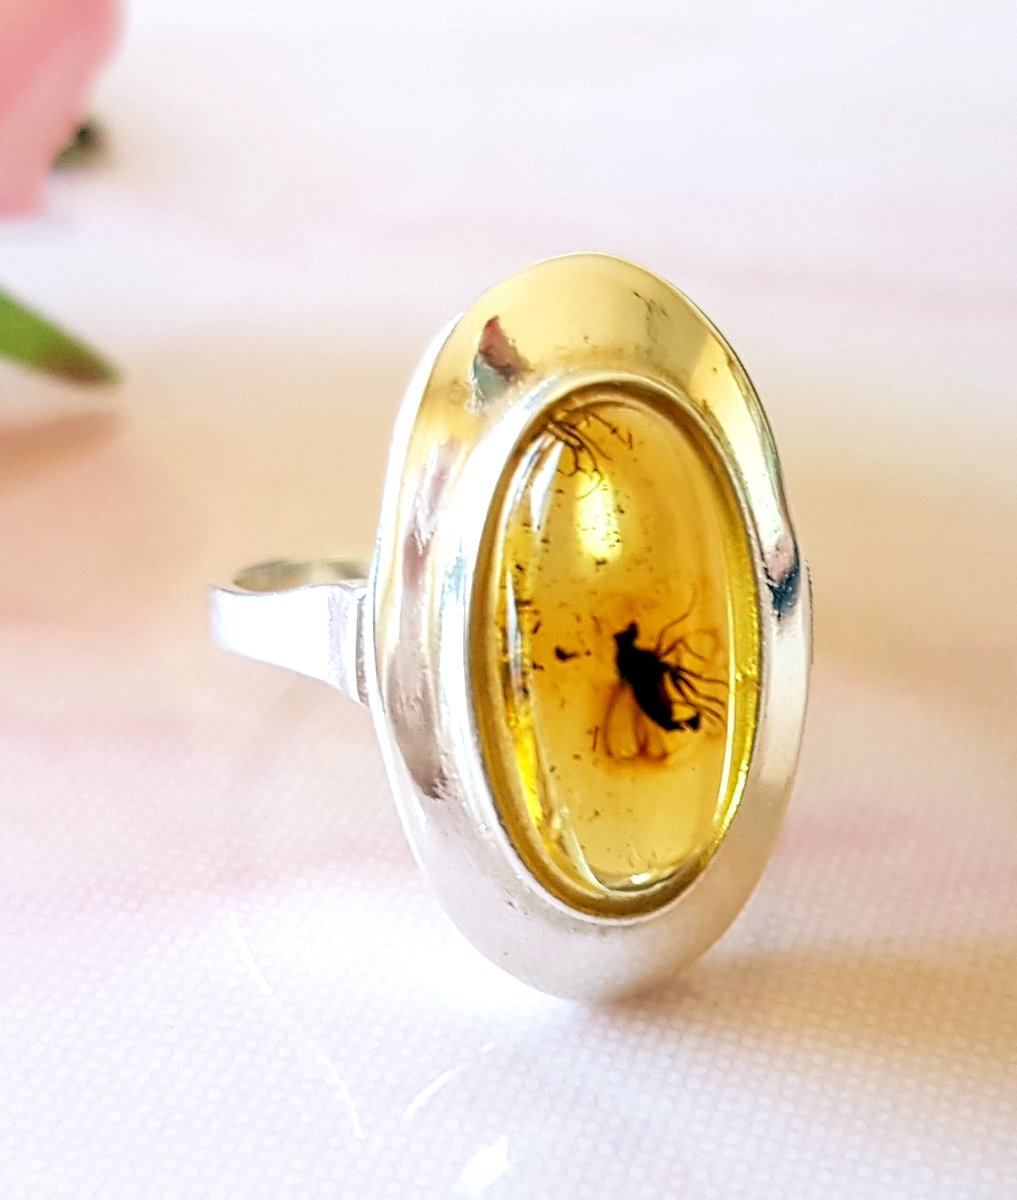 Exclusive BALTIC AMBER Ring with Fossil Insect 925 Sterling SILVER Natural Baltic Amber